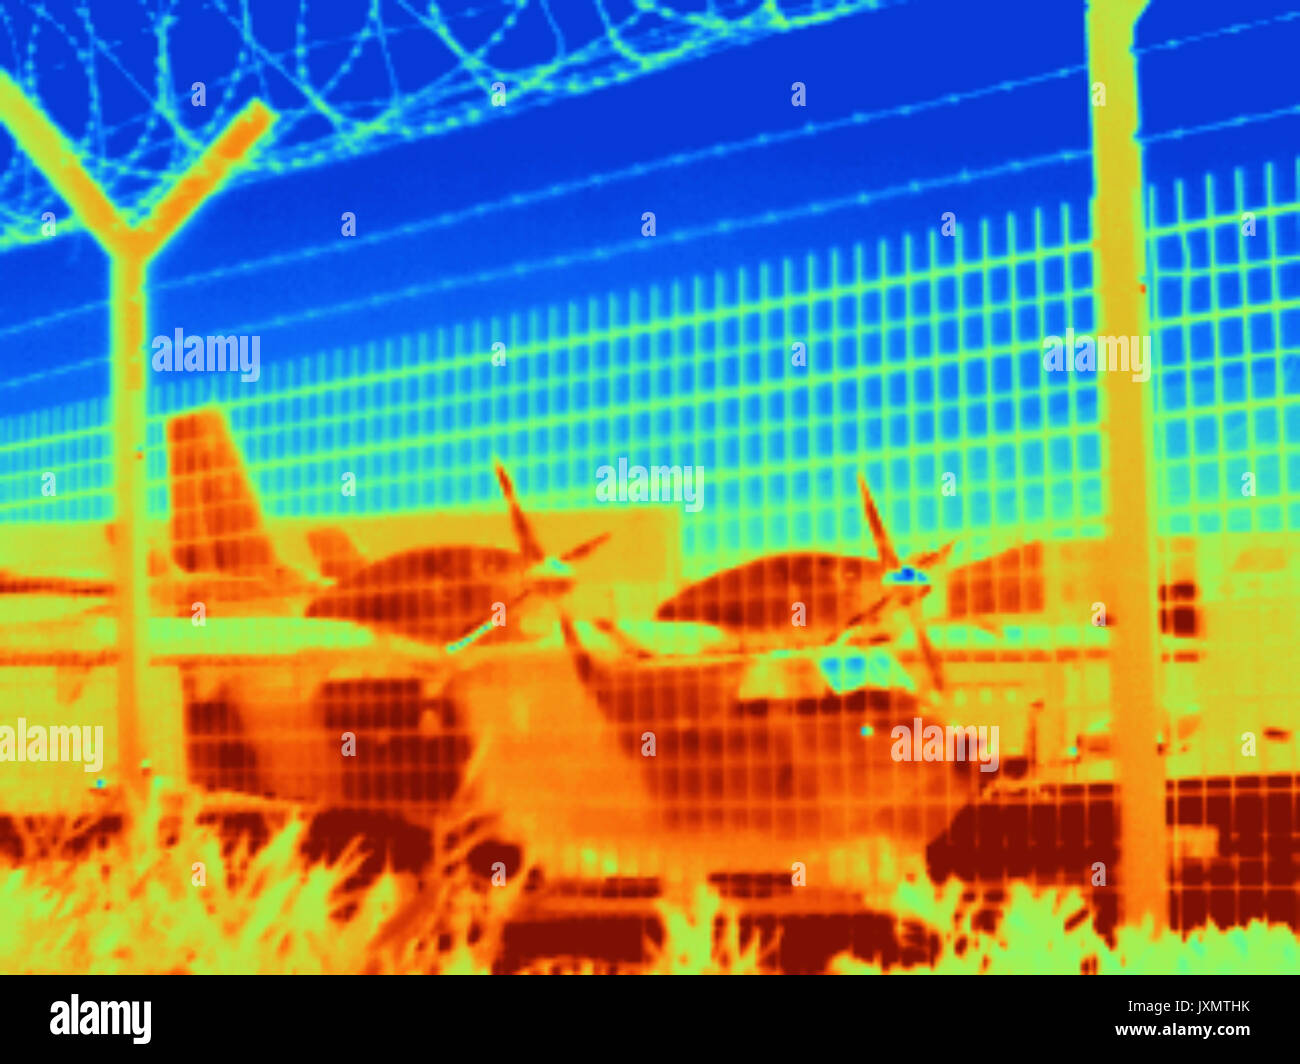 Thermal image of aeroplane seen through wire fence - Stock Image